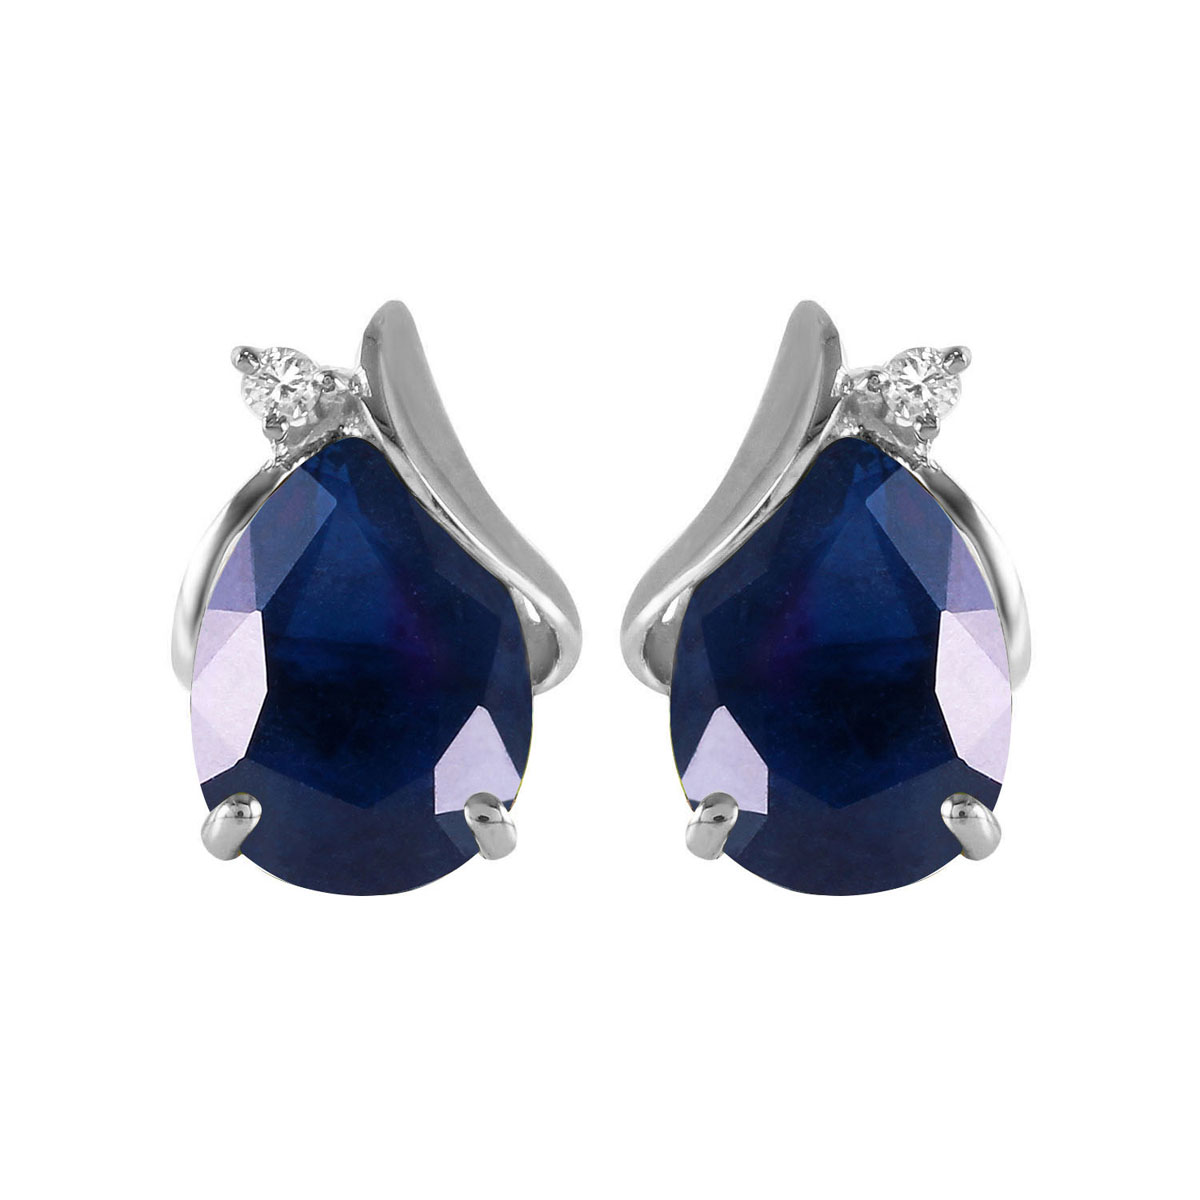 Sapphire & Diamond Stud Earrings in 9ct White Gold